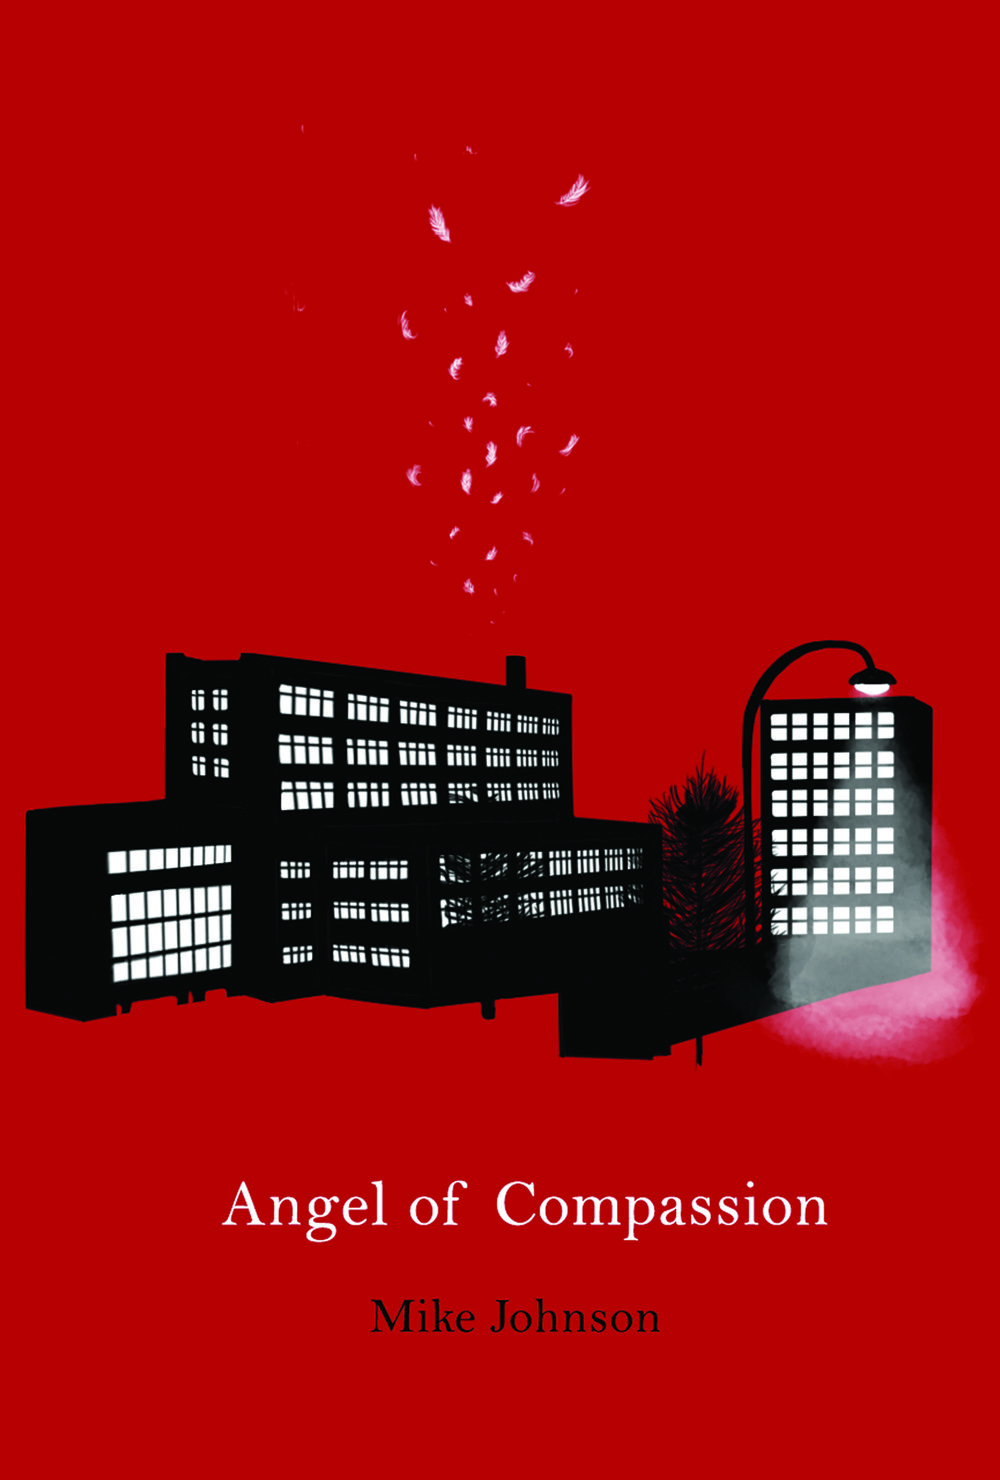 Angel of Compassion  : a chronicle of Mike's recent healing journey.